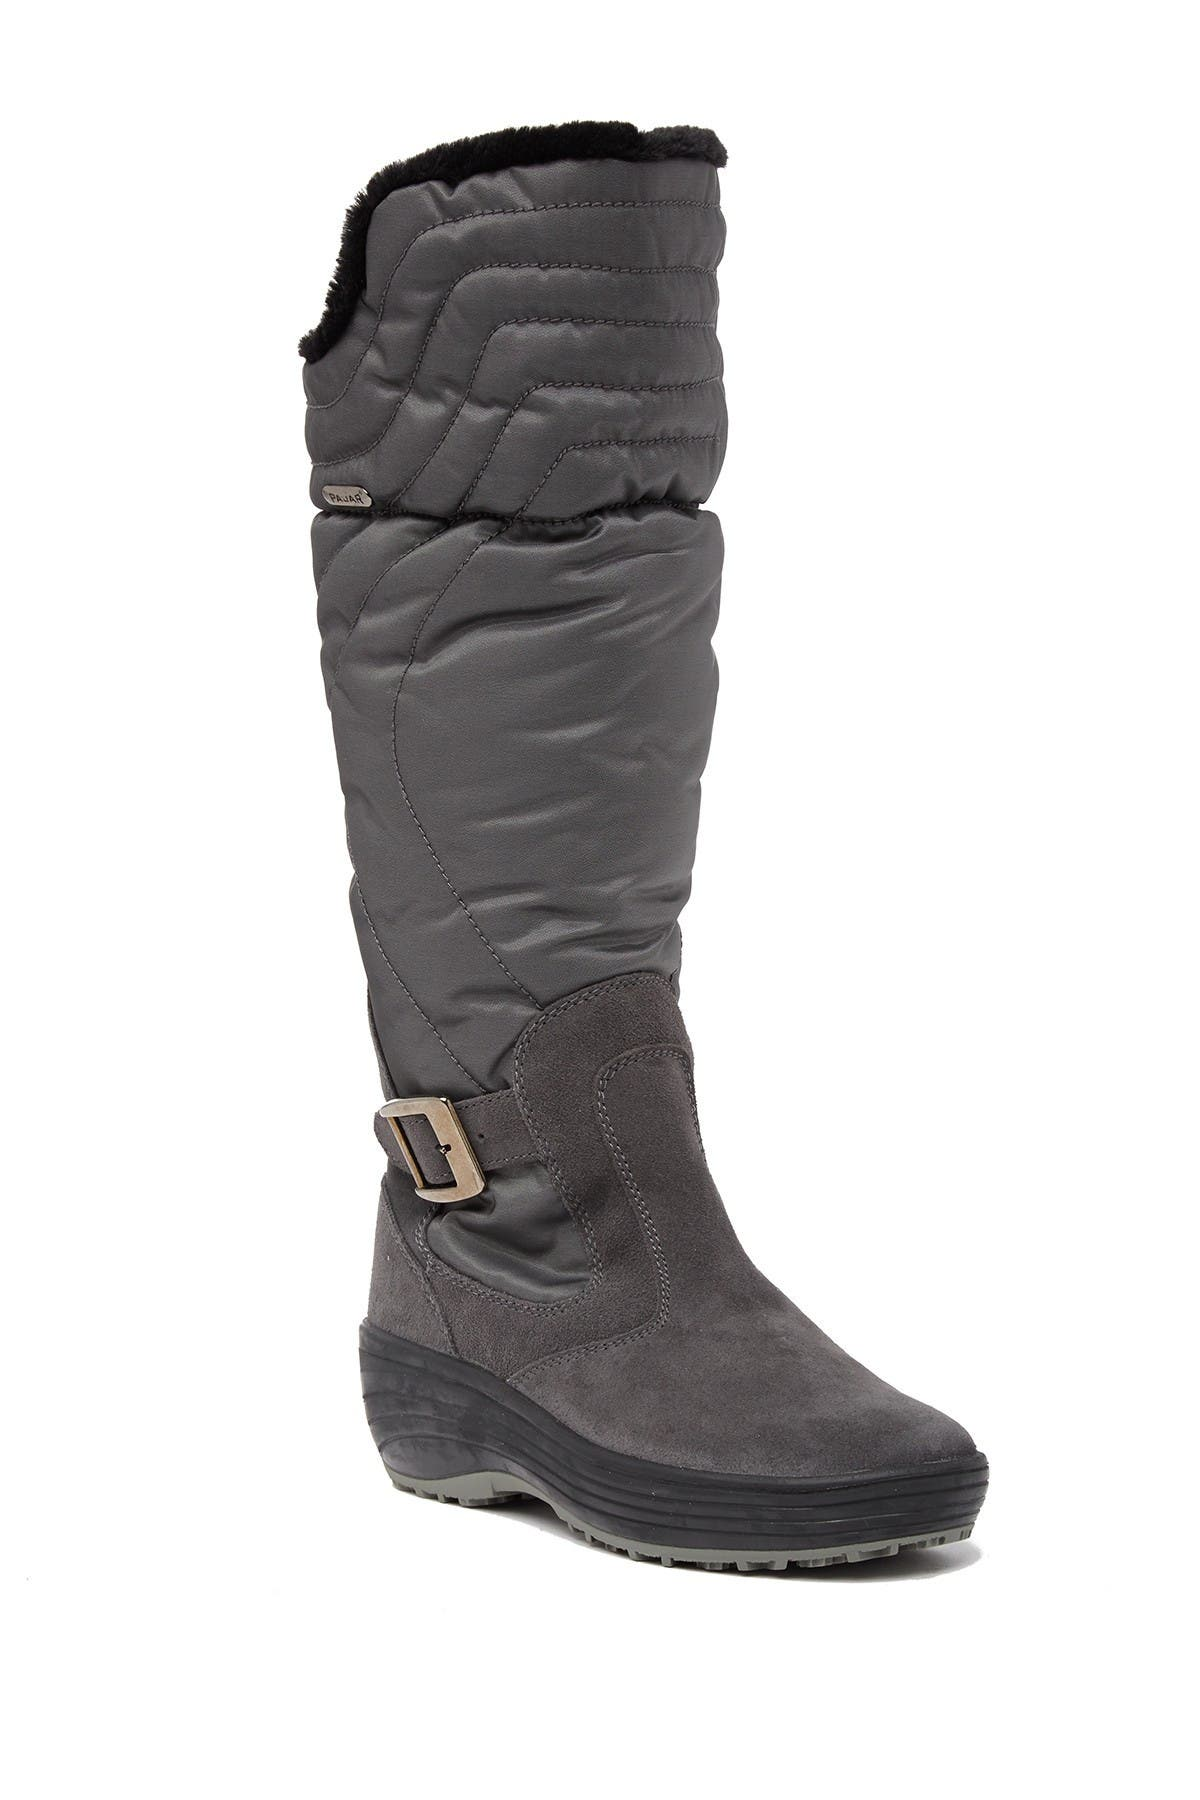 Snow Boots Clearance | Nordstrom Rack